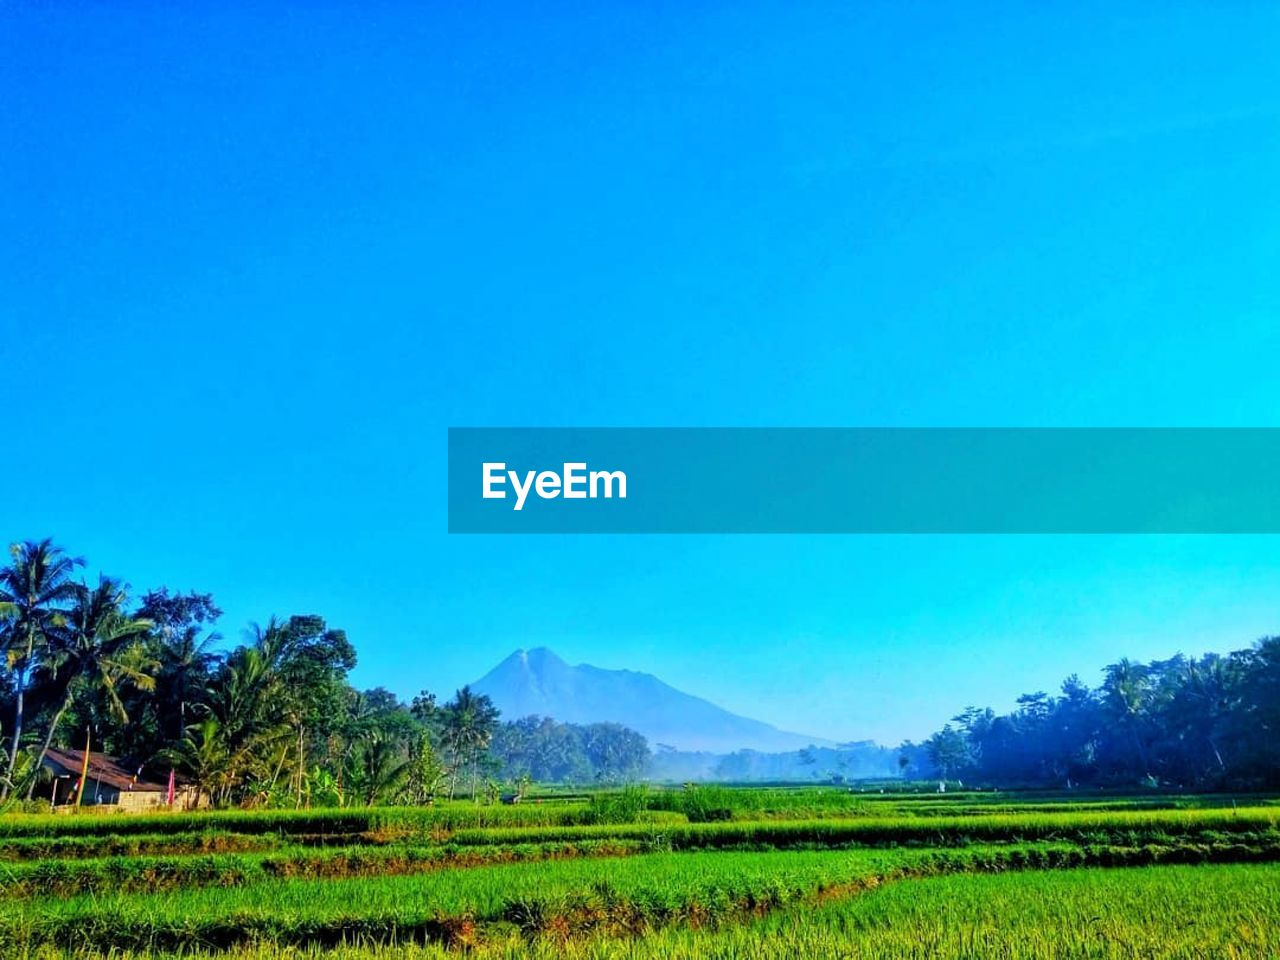 plant, sky, scenics - nature, tree, landscape, tranquil scene, beauty in nature, blue, copy space, tranquility, land, field, clear sky, environment, growth, nature, green color, rural scene, mountain, no people, outdoors